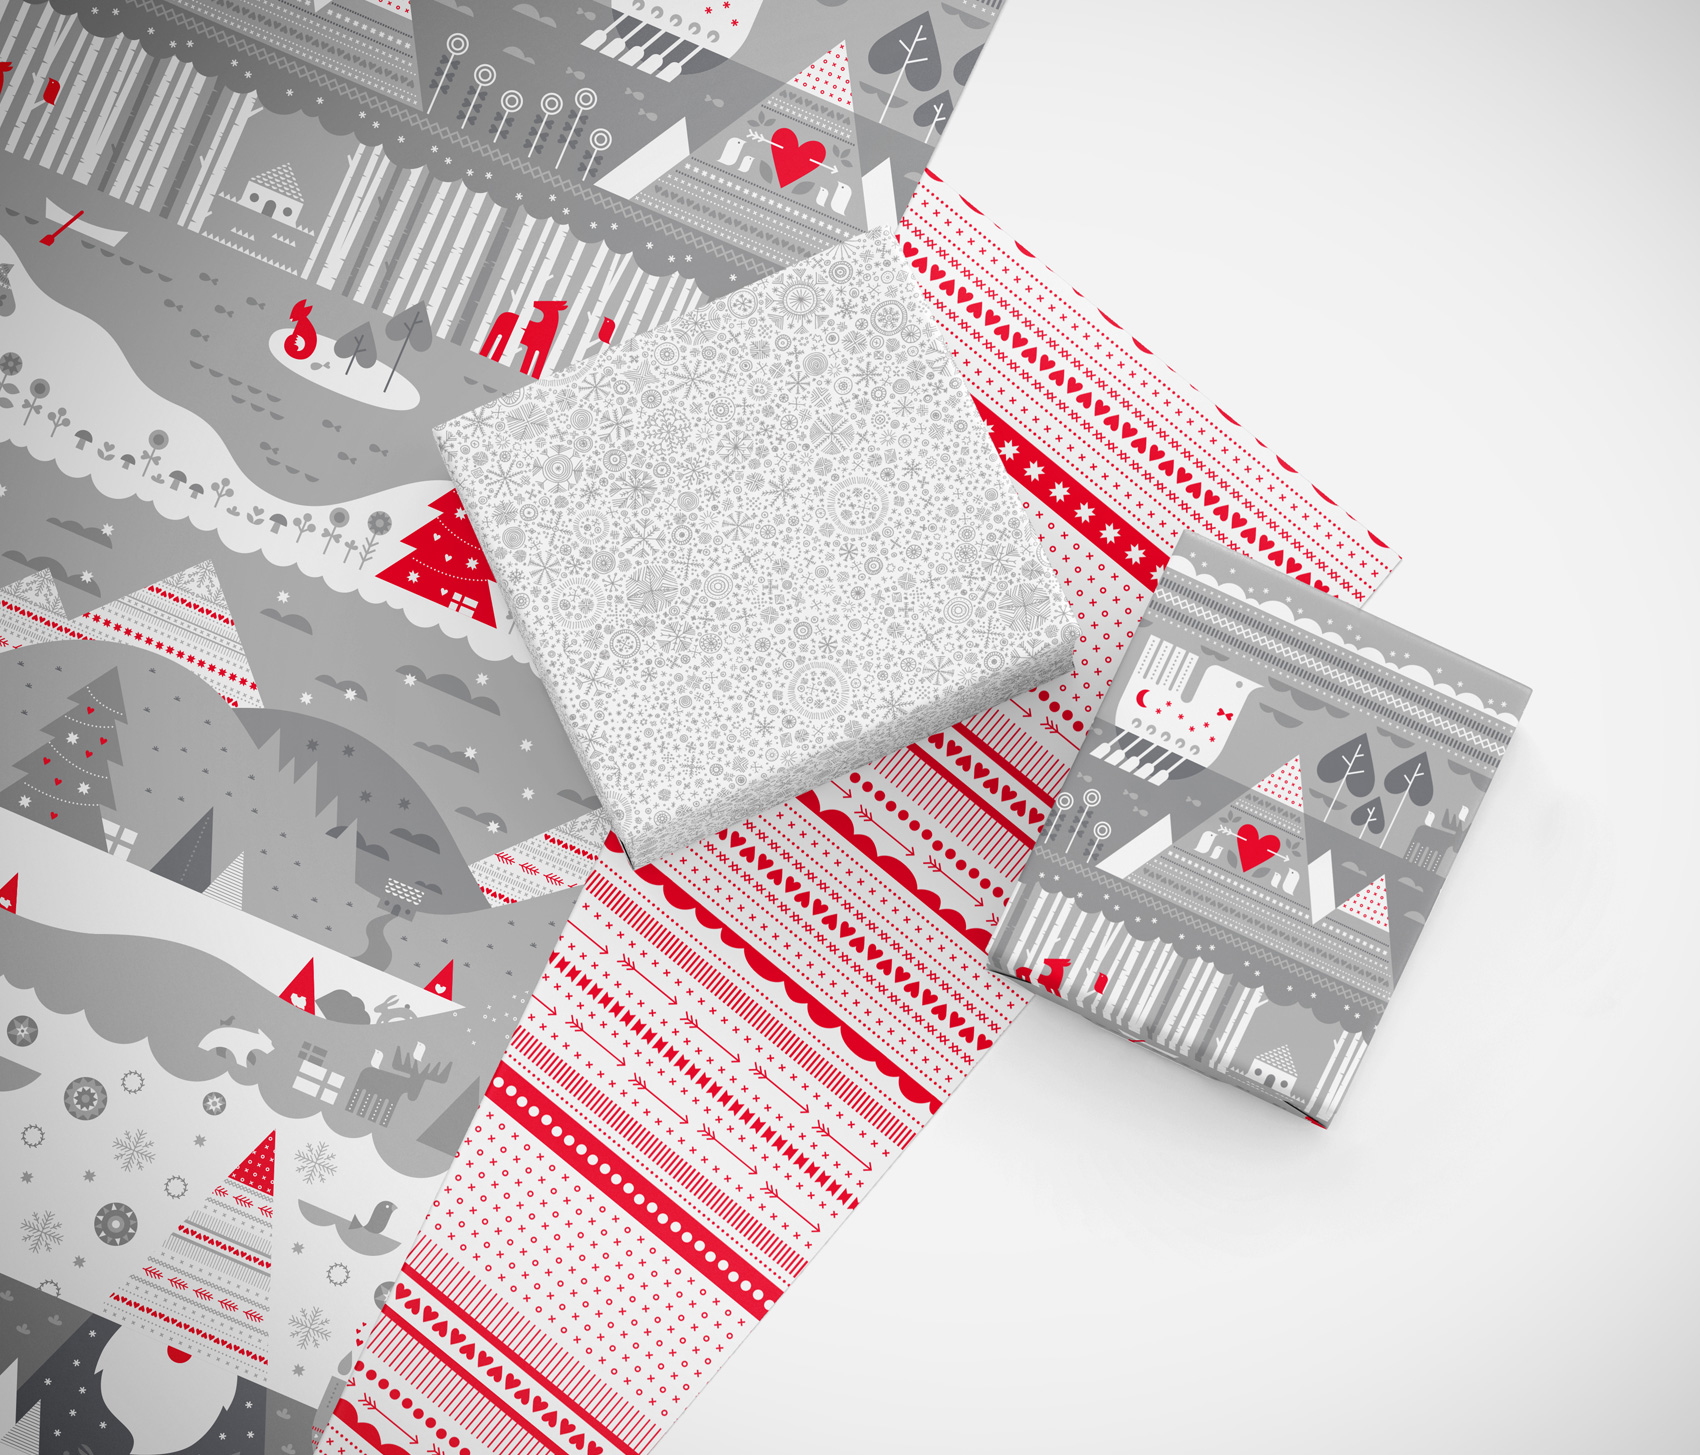 Red ribbon and silver snowflake flurry gift wrap paper patterns, along with gnome winter landscape in tonal grays.